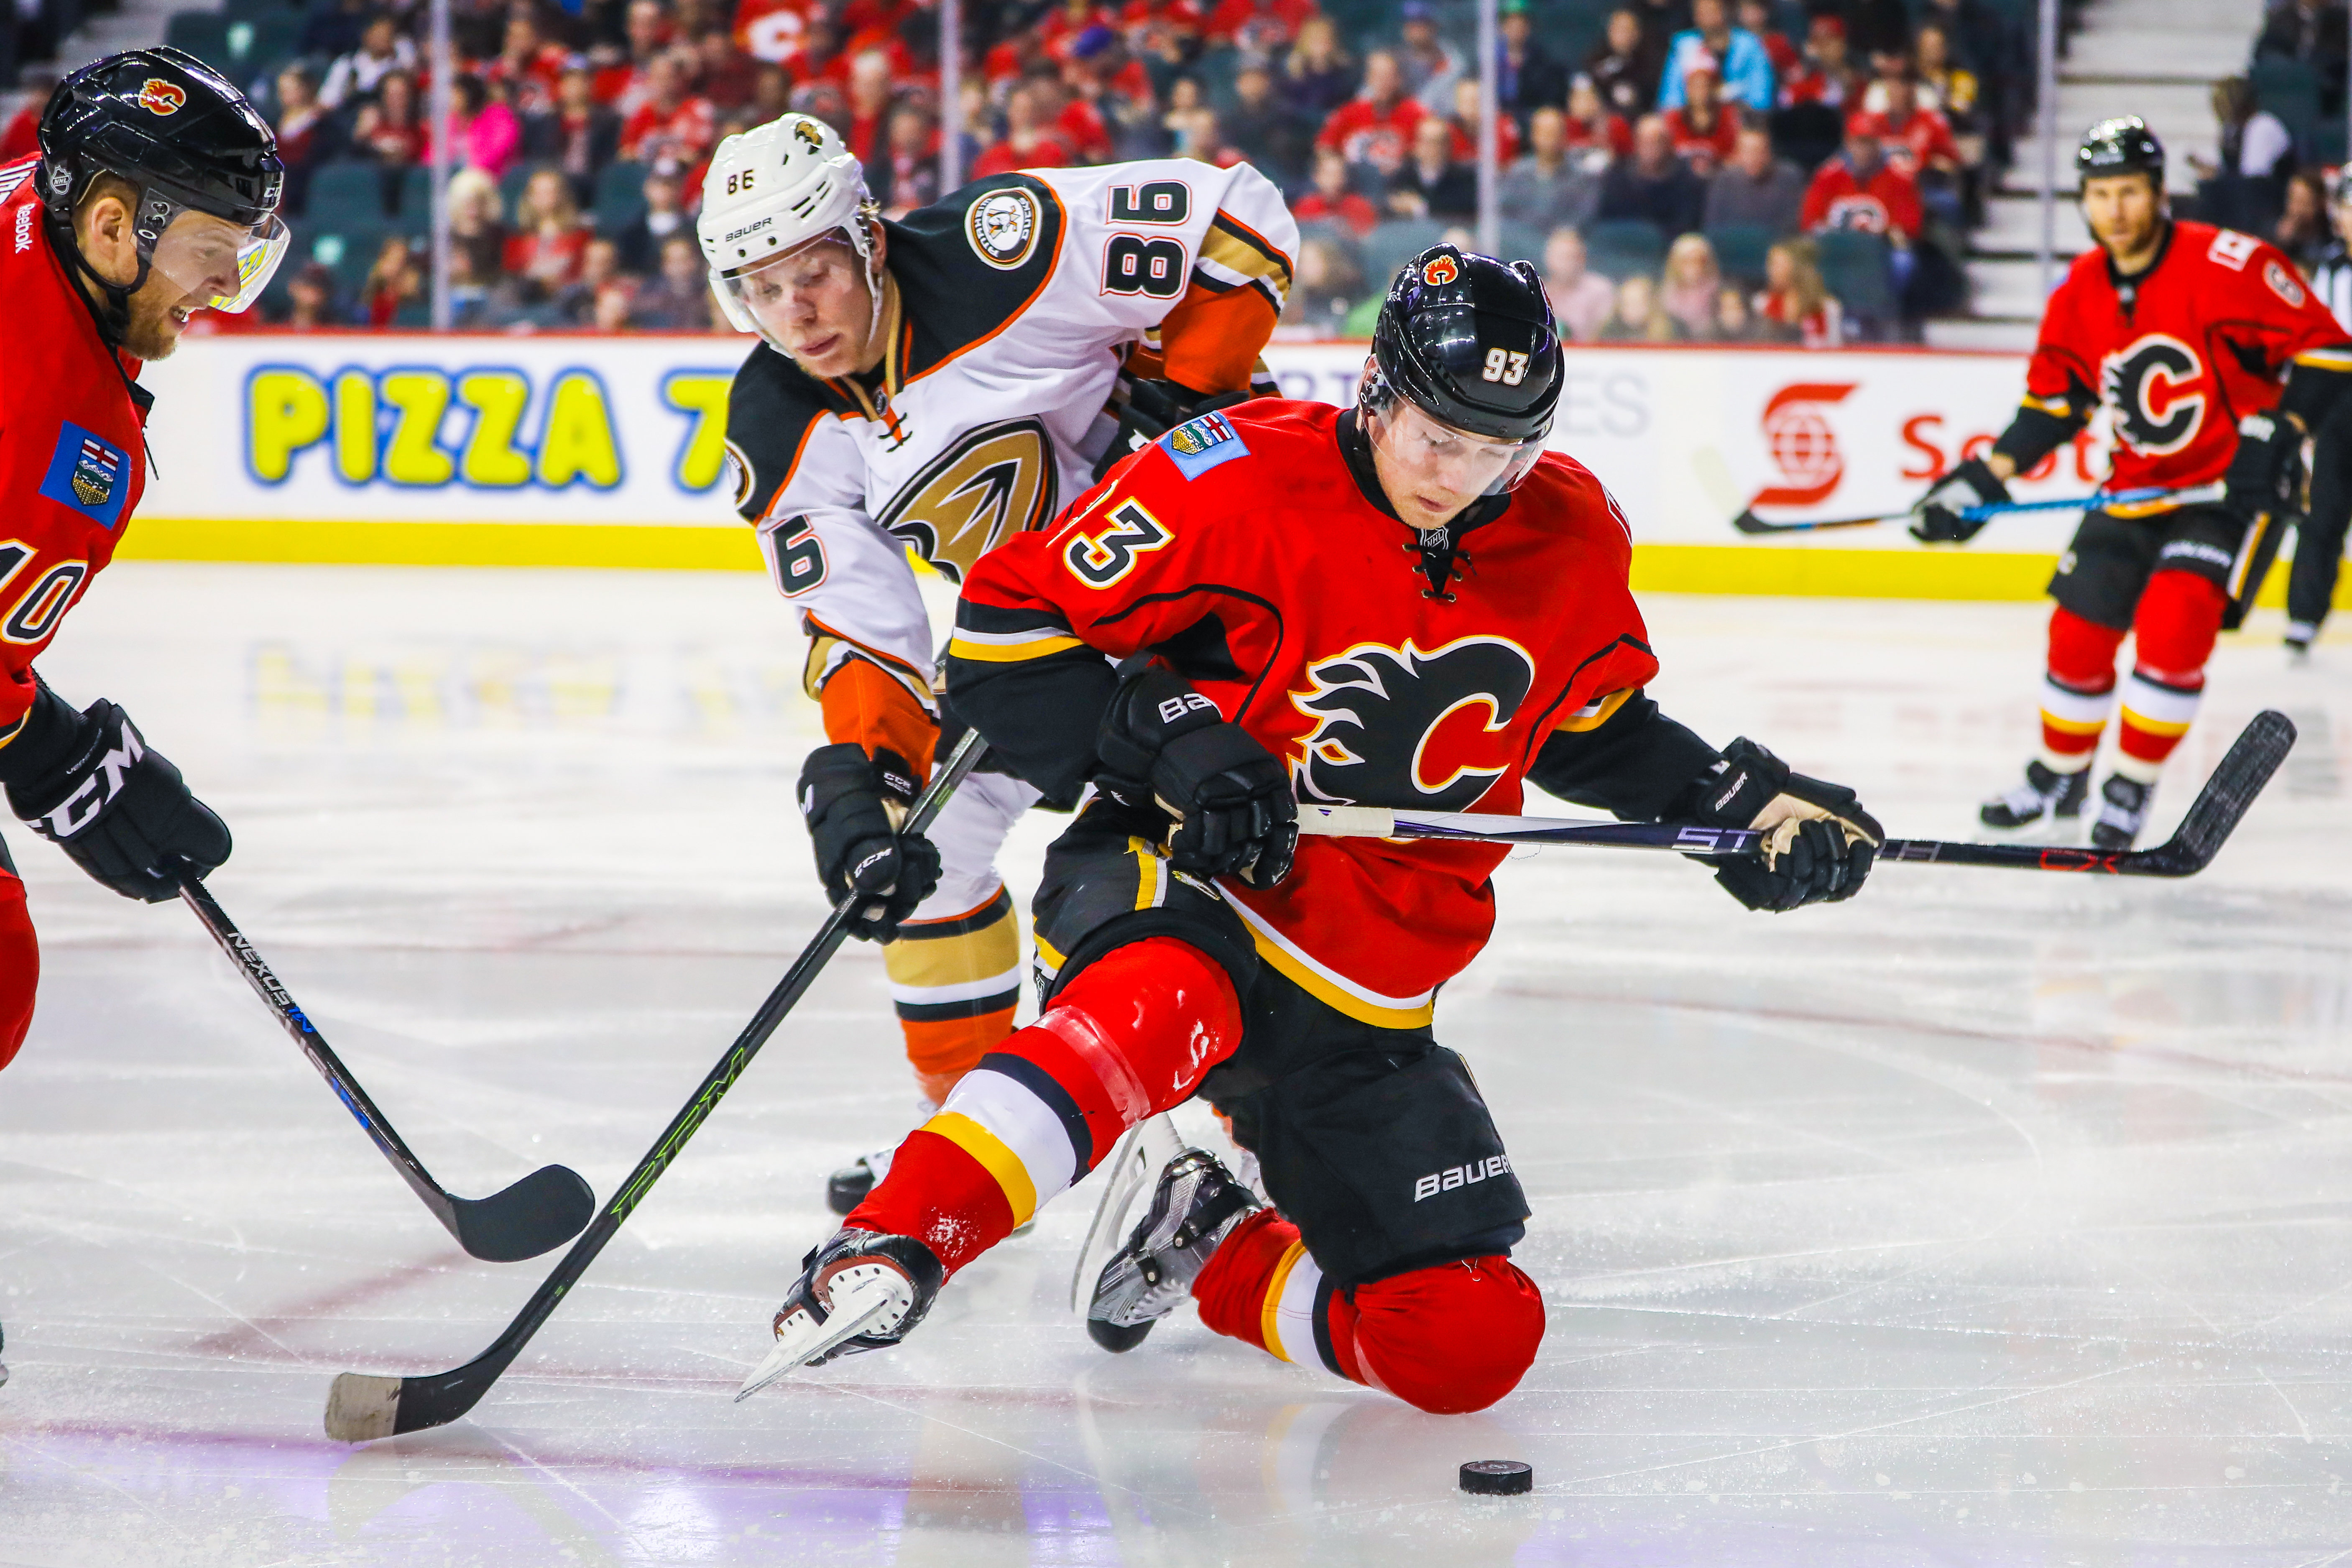 Recap: Calgary Flames (8) Vs Anaheim Ducks (3